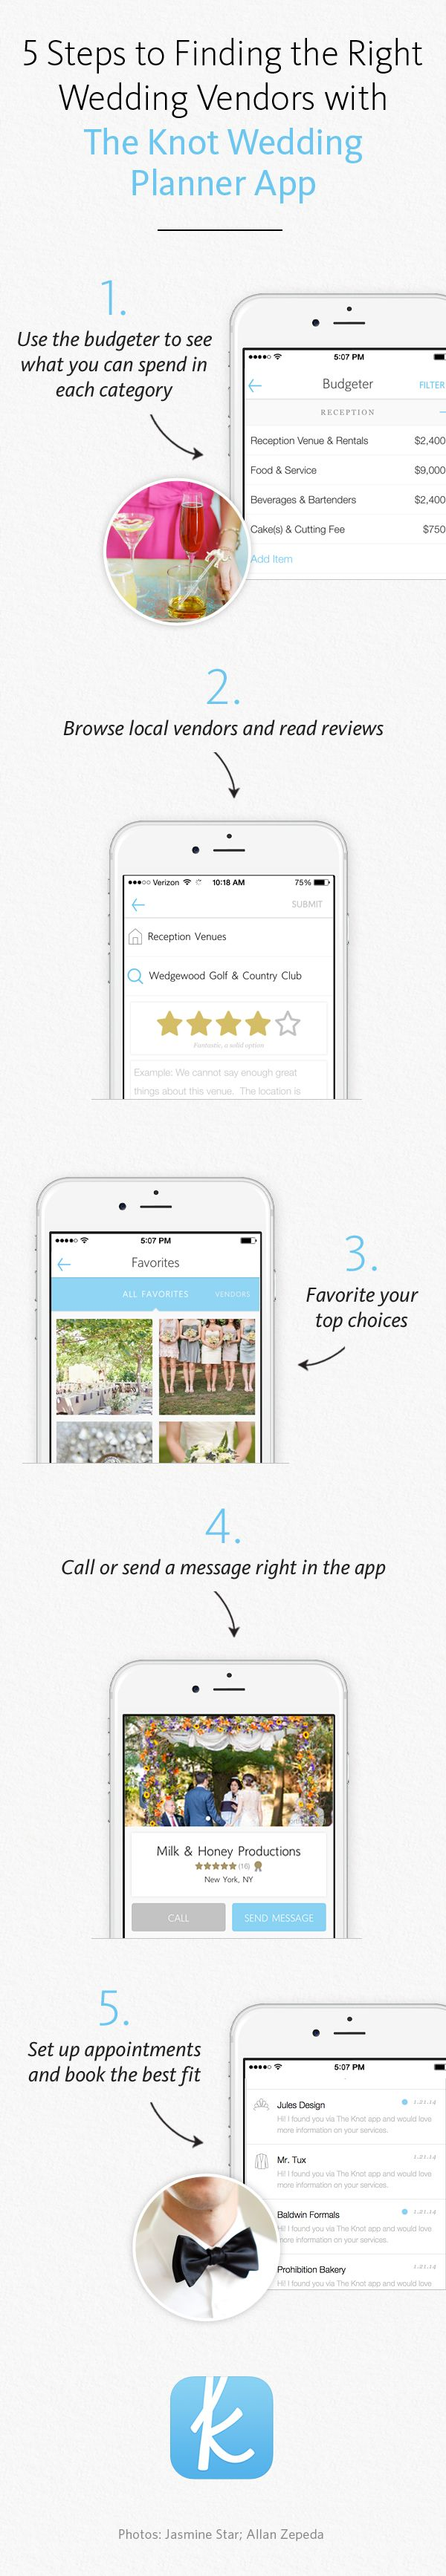 Budget for your dream venue, browse nearby vendors, read reviews and more. 5 steps to finding the right wedding vendor brought to you by The Knot's Planner App